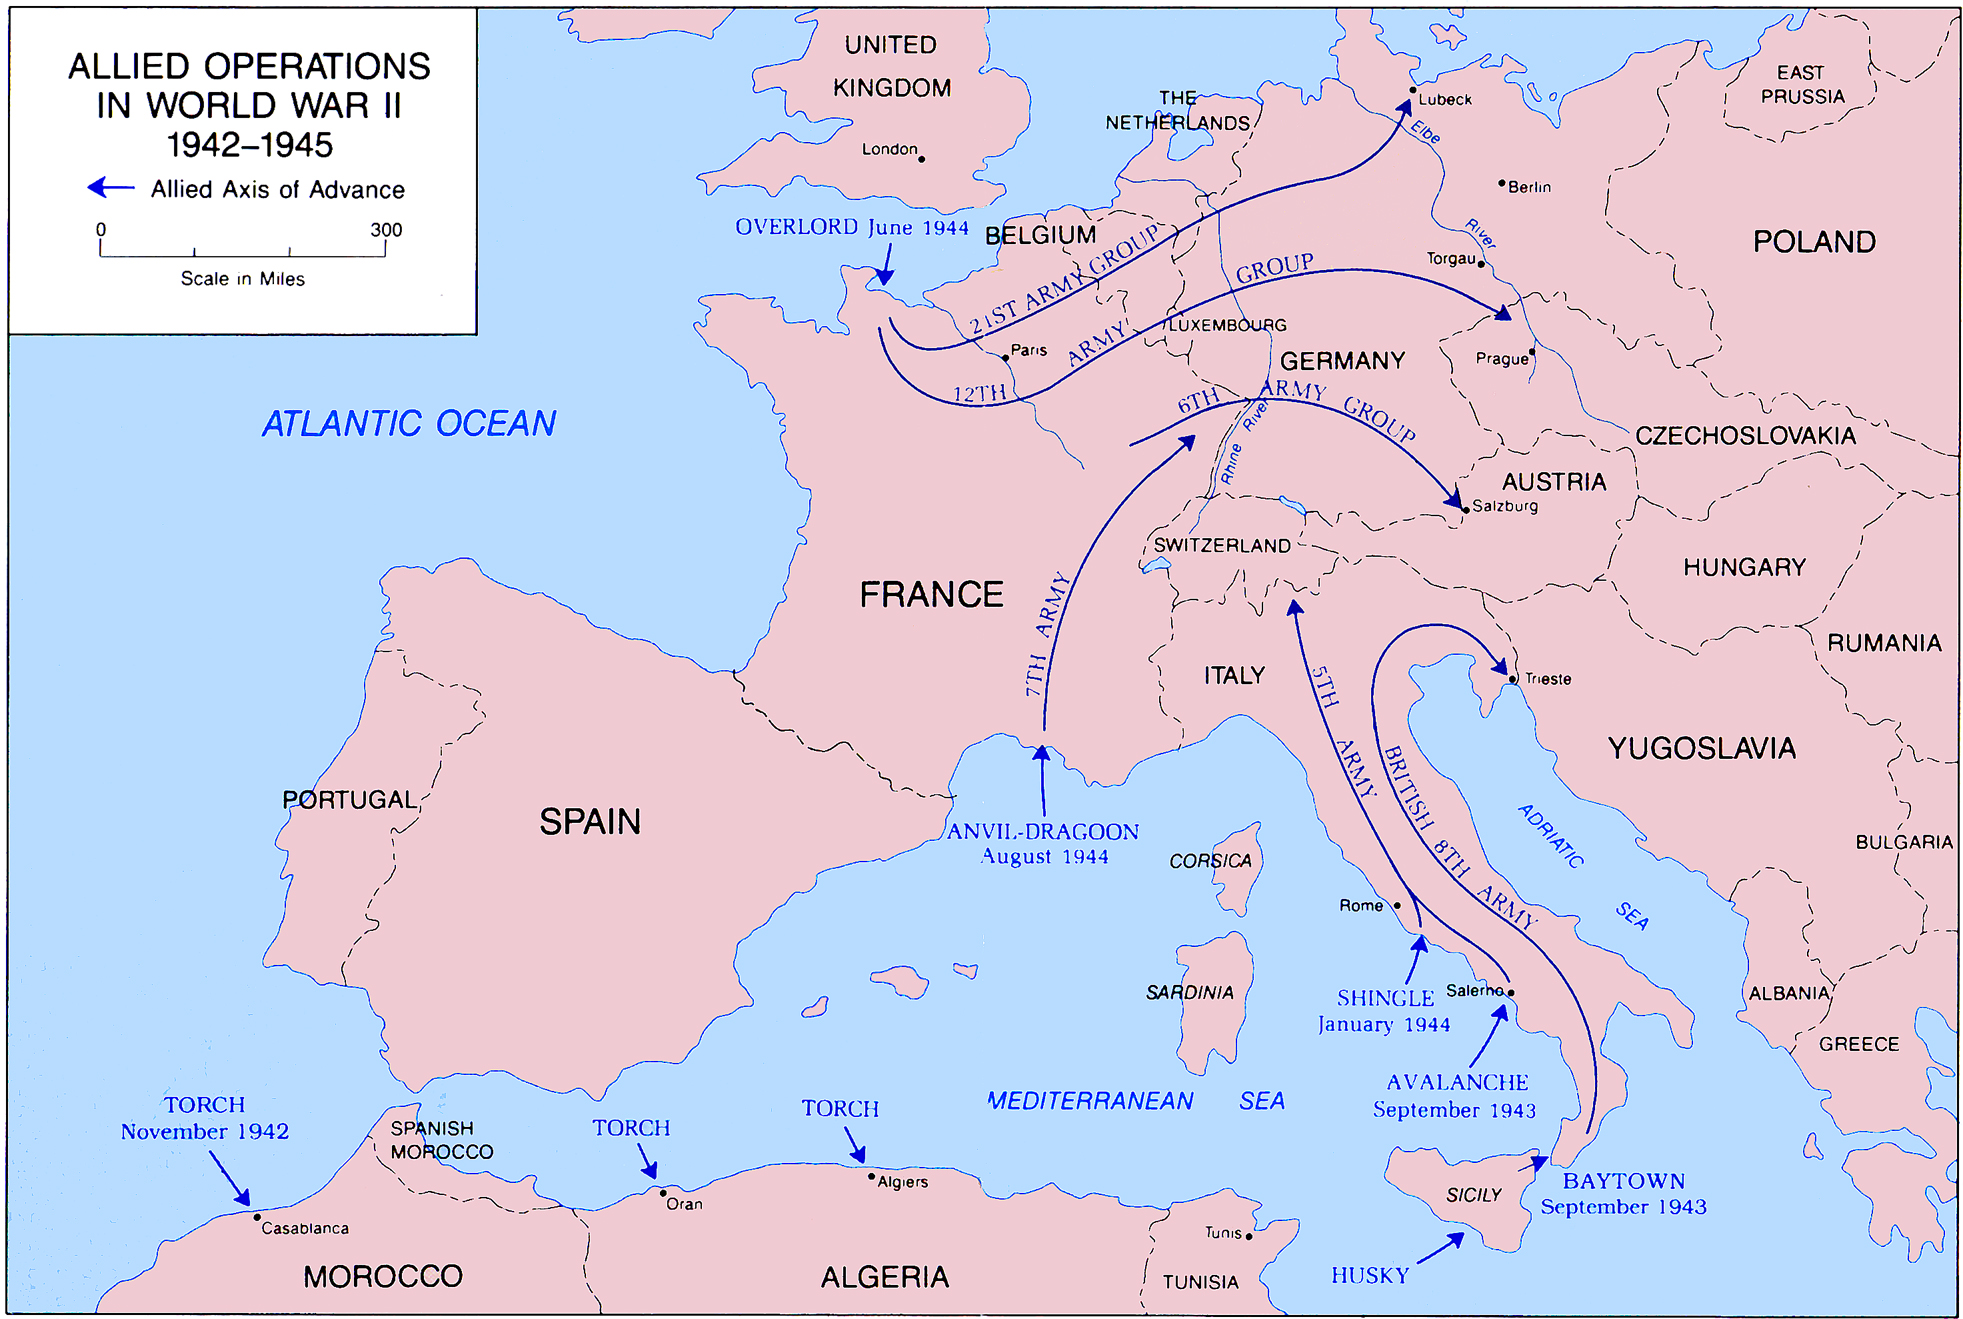 Map of the allied operations 1942 1945 map of world war ii allied operations in europe and north africa 1942 1945 sciox Image collections